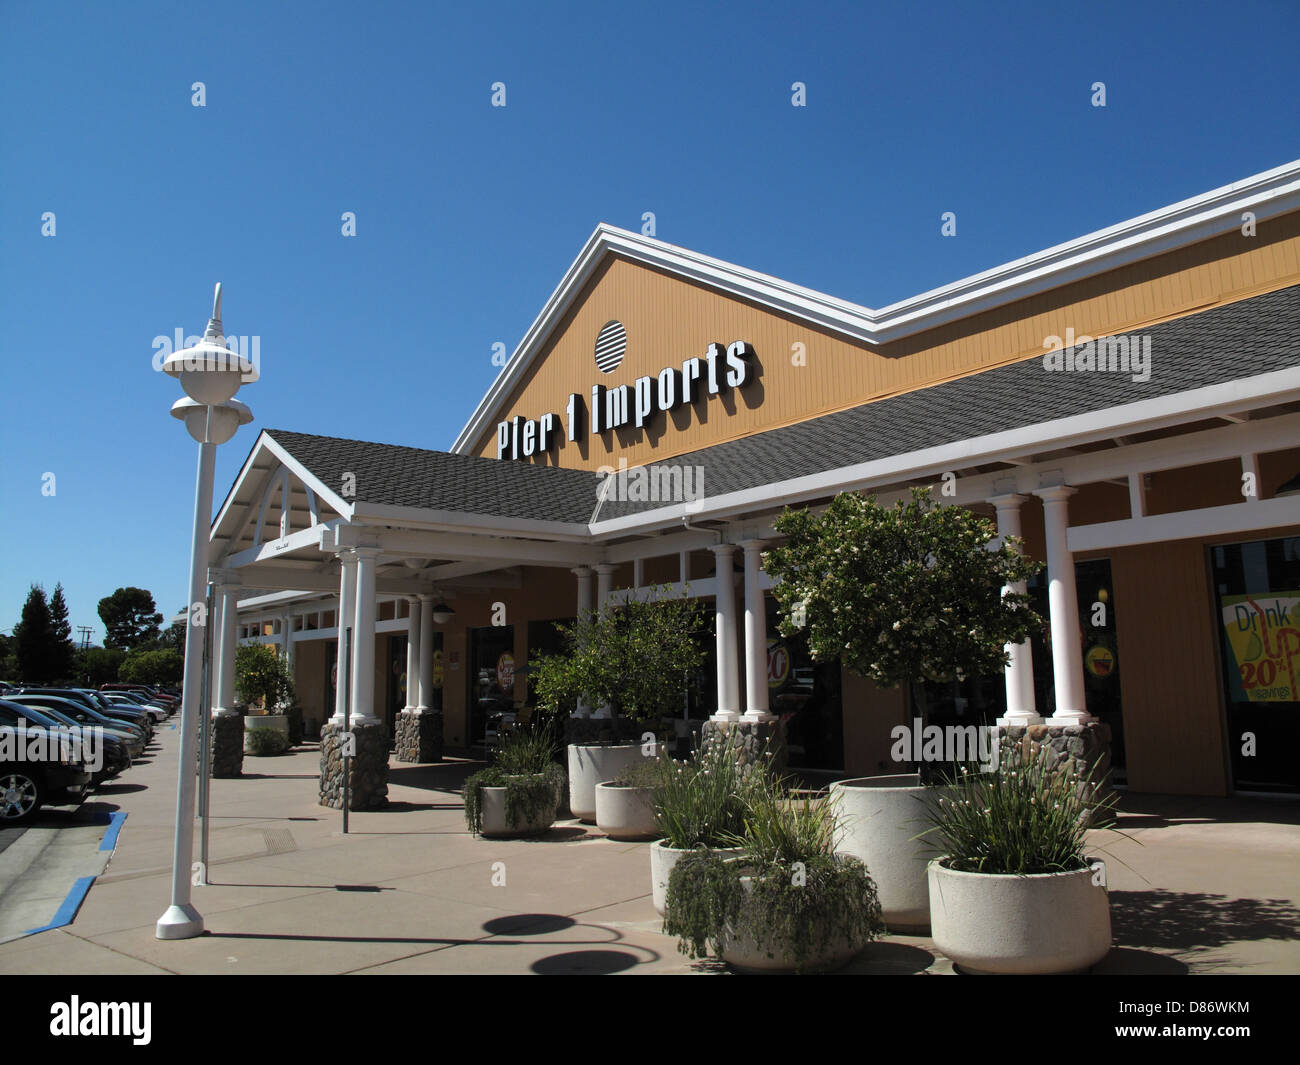 Pier 1 Imports store in Los Gatos, California - Stock Image